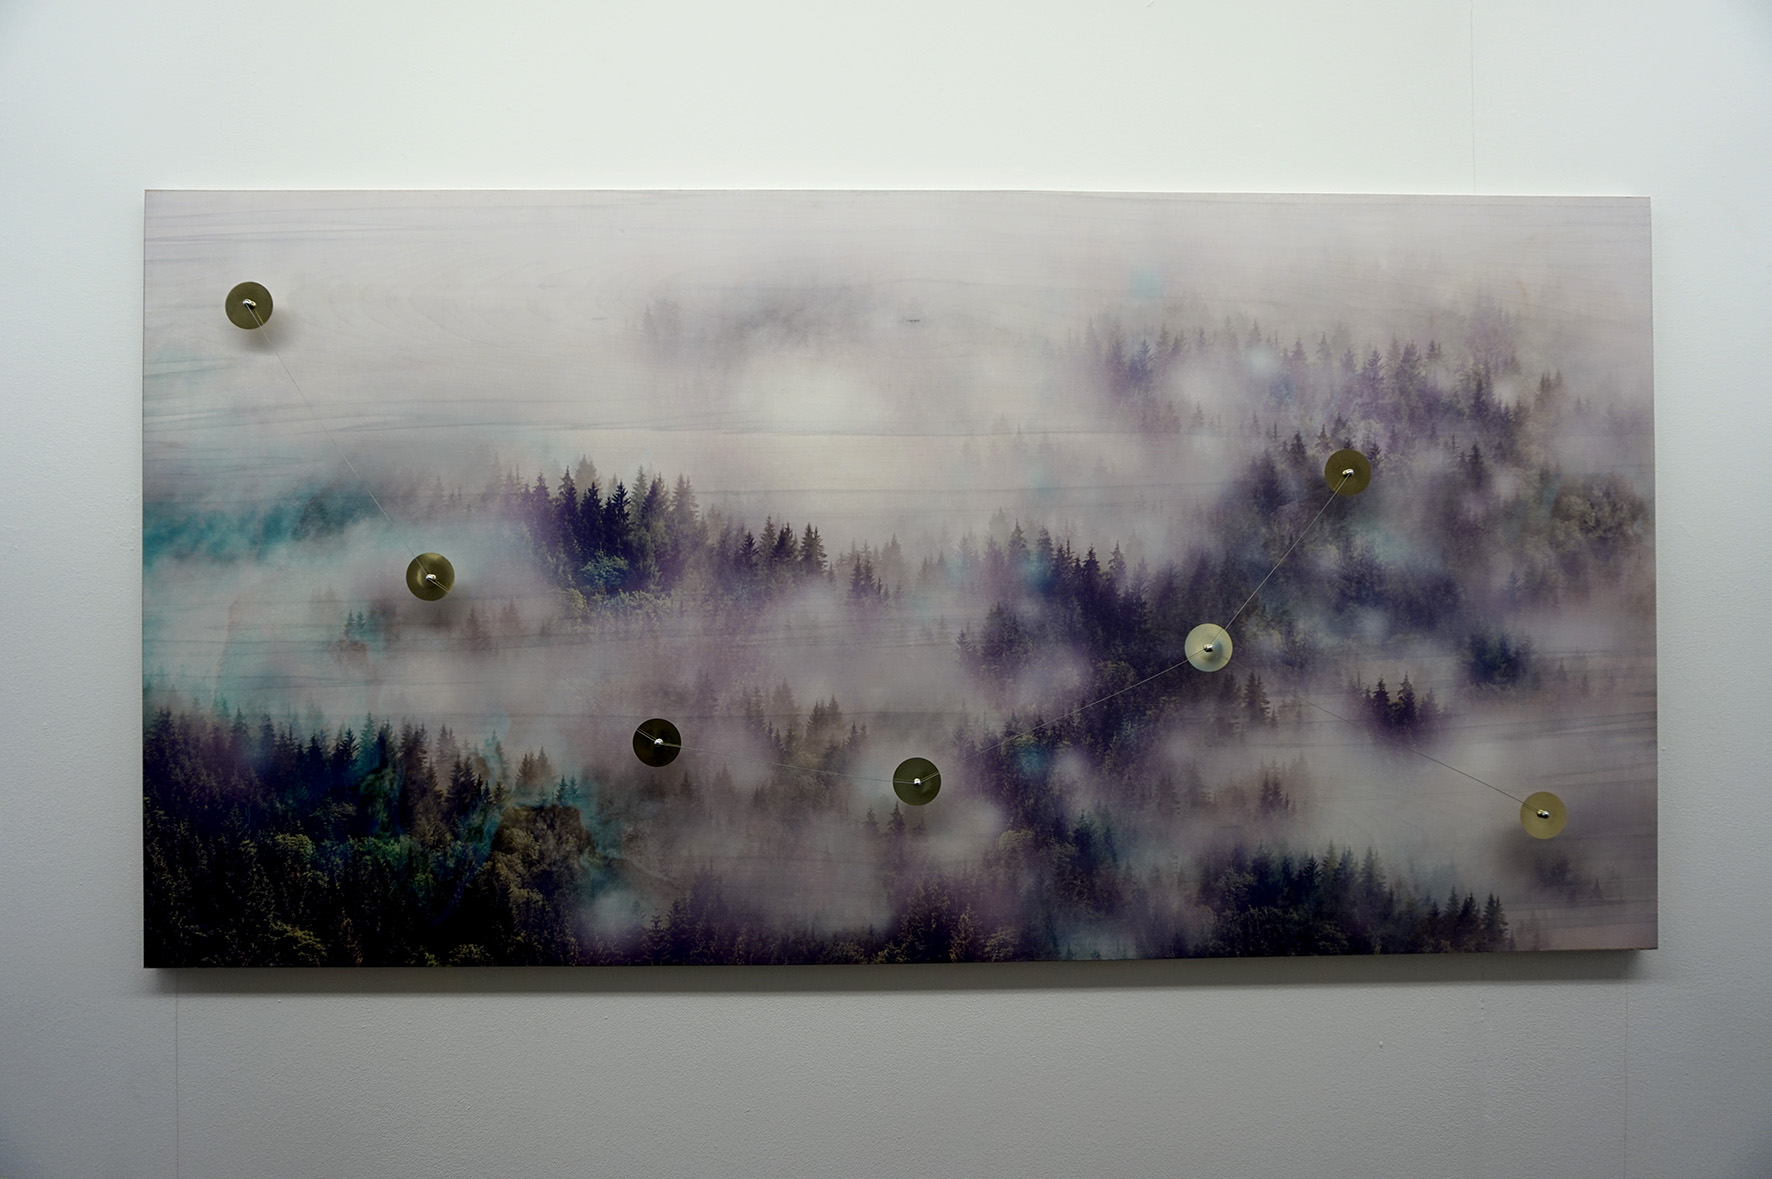 Alexandre Joly,La constellation des sapins 2017, print on wood, aluminium frame, piezo speakers, magnets, piano cords, copper wires, audio player, amplifier, 162x826 cm cm